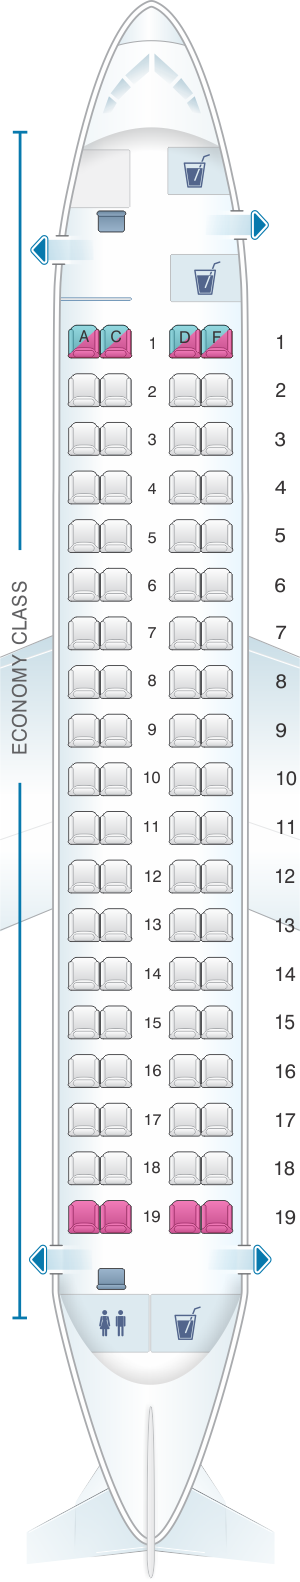 Seat map for Finnair Embraer EMB 170